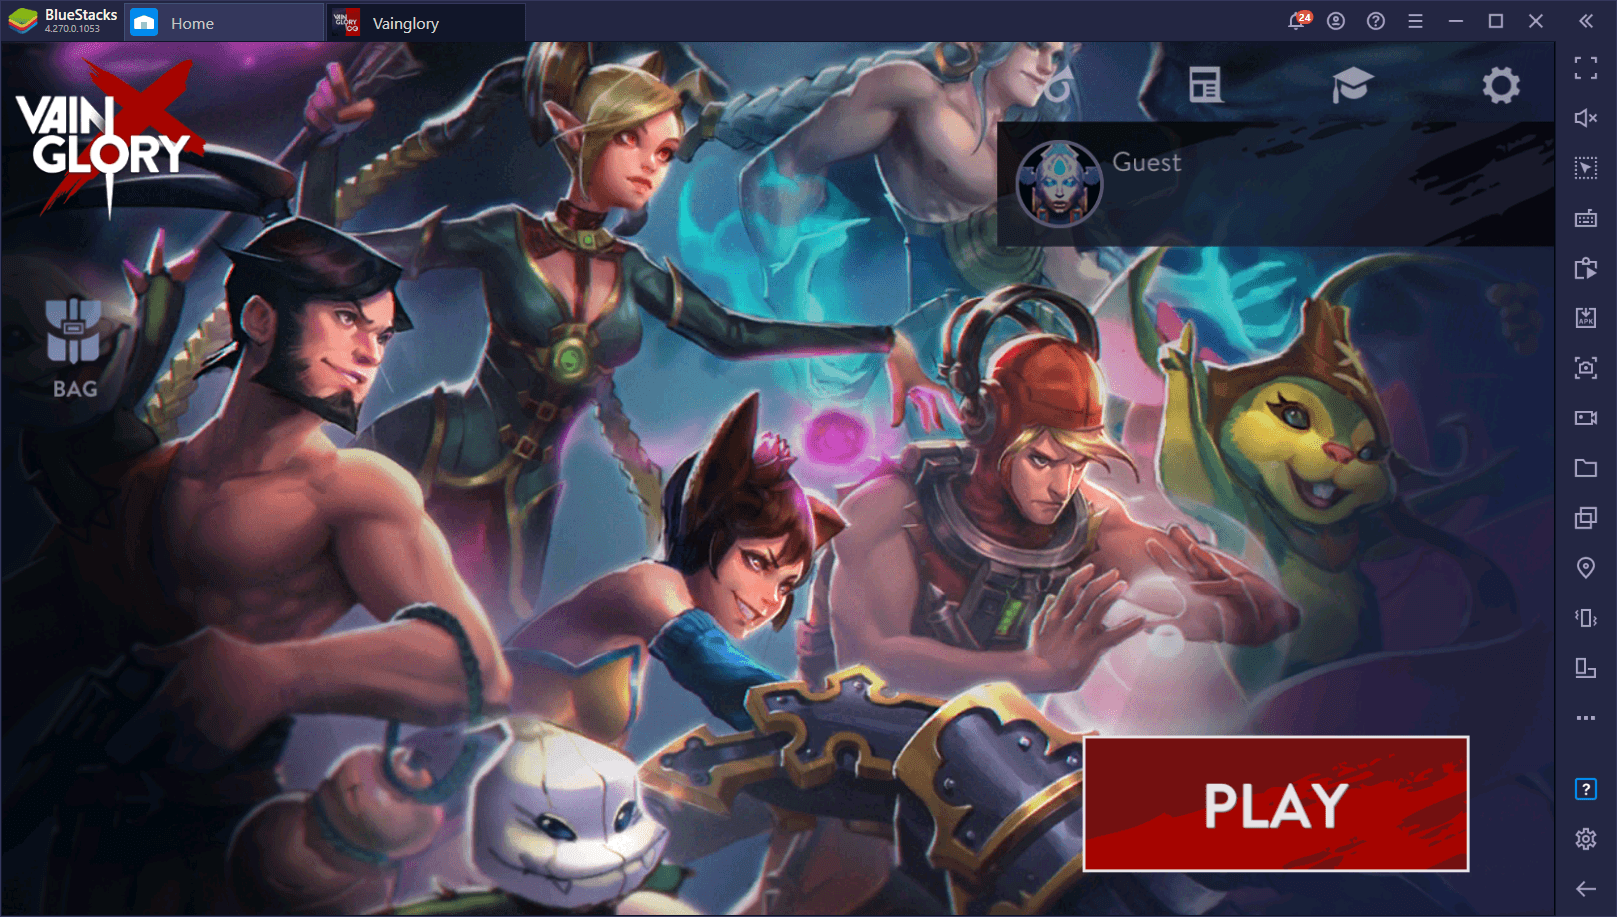 How to Play Vainglory on PC with BlueStacks and Access the Best Tools to Help You Win